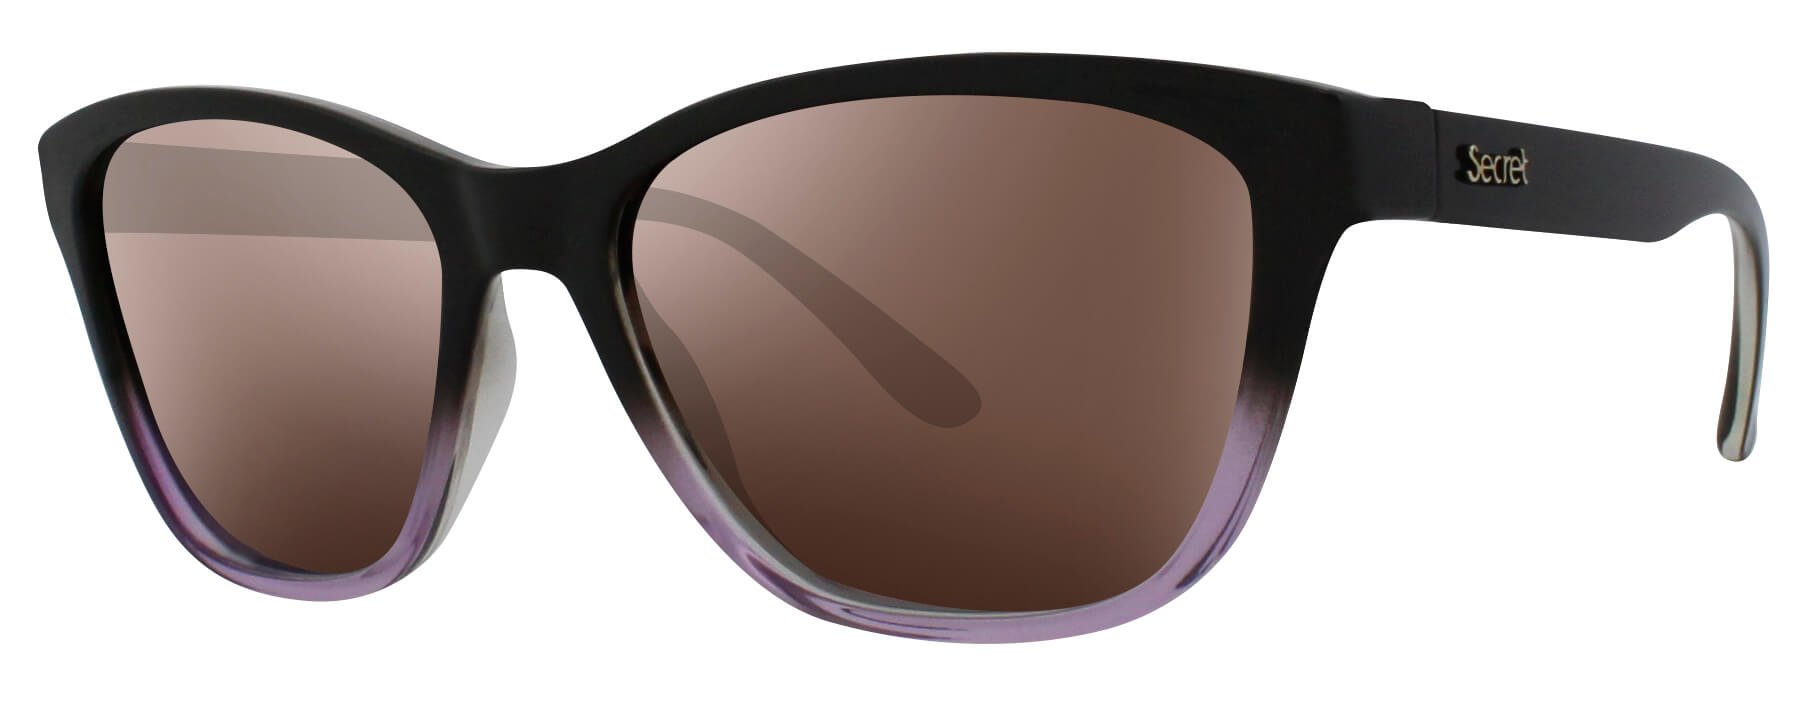 ÓC SECRET NARA FADE BROW/GLASSY PURPLE / POLARIZED BROWN